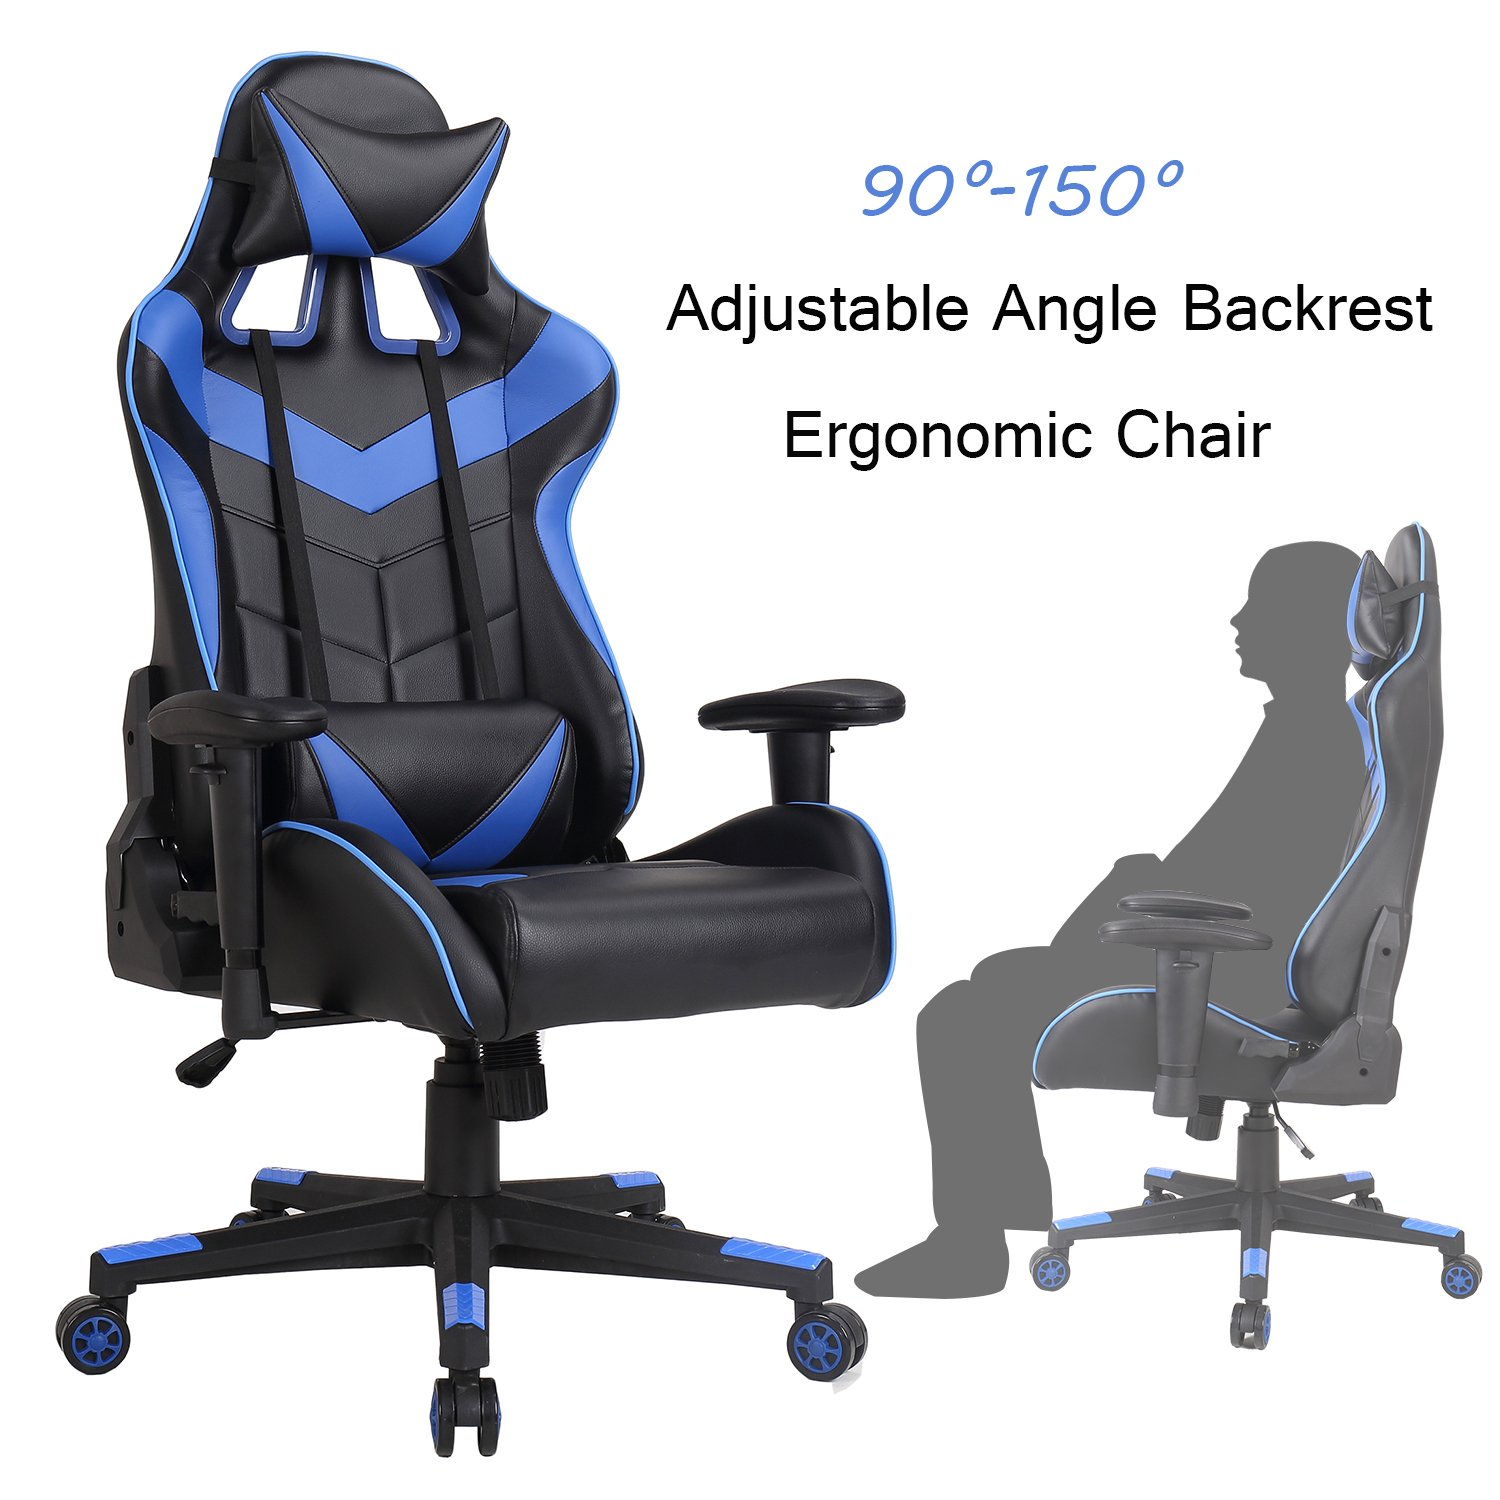 Racing Chair Swivel Office Executive-Gaming Computer Chair Desk Task Ergonomic Rocker PU Leather with Lumbar Support and Head Support Cushion for Home Adjustment High Back Chairs